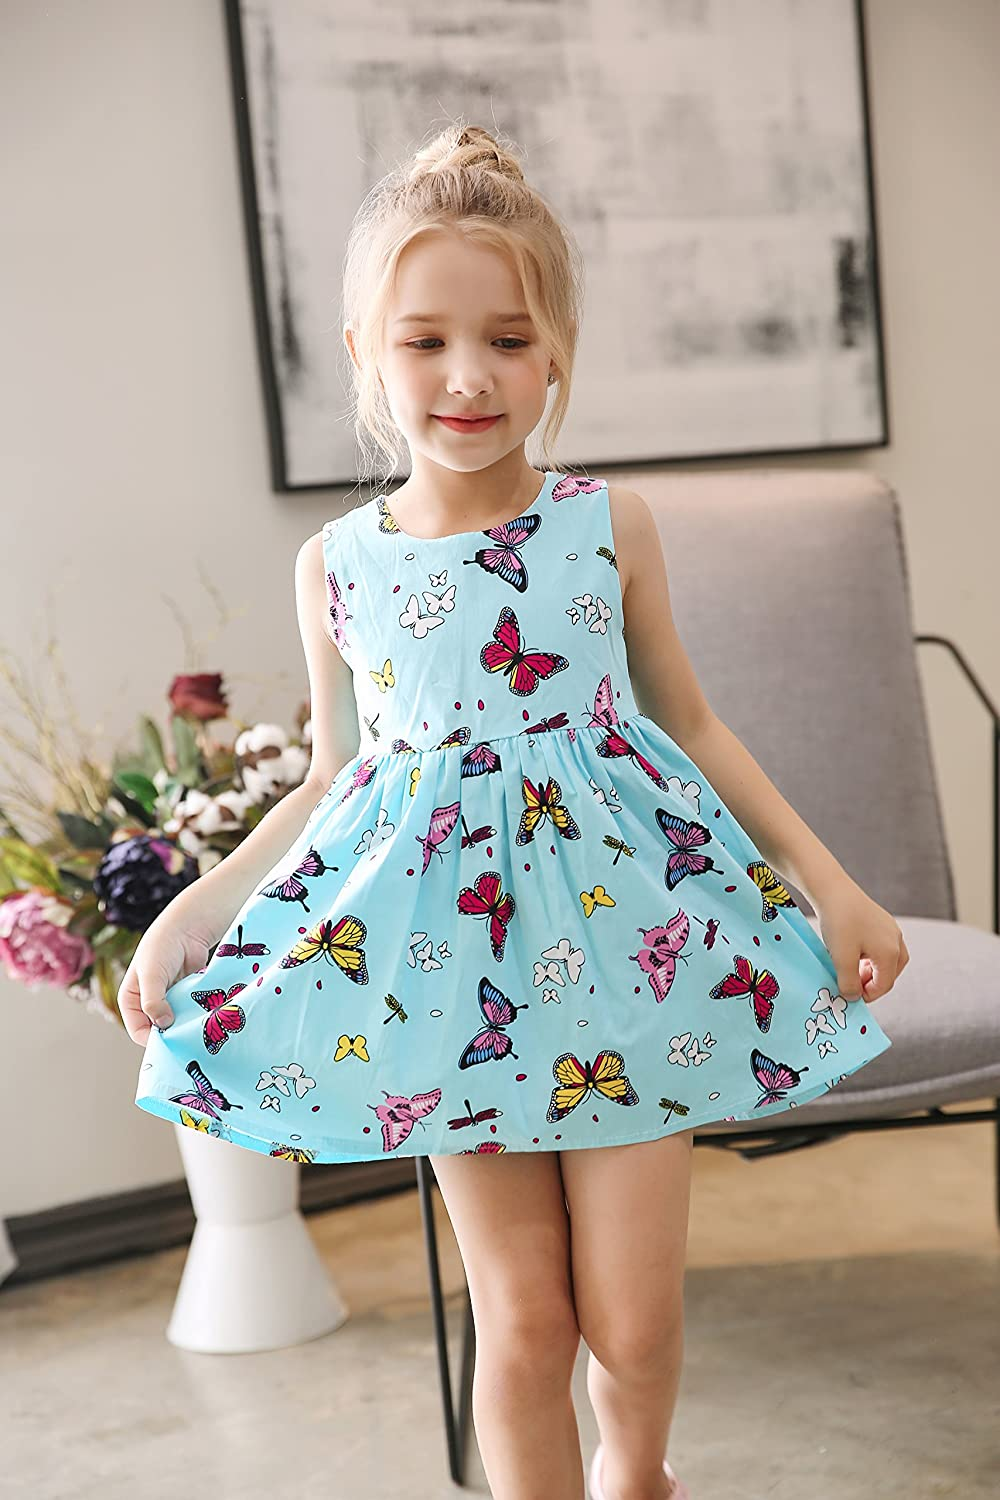 Girls Age 1-7 Butterfly Casual Toddler Yellow Pink Dress Cartoon Outfits